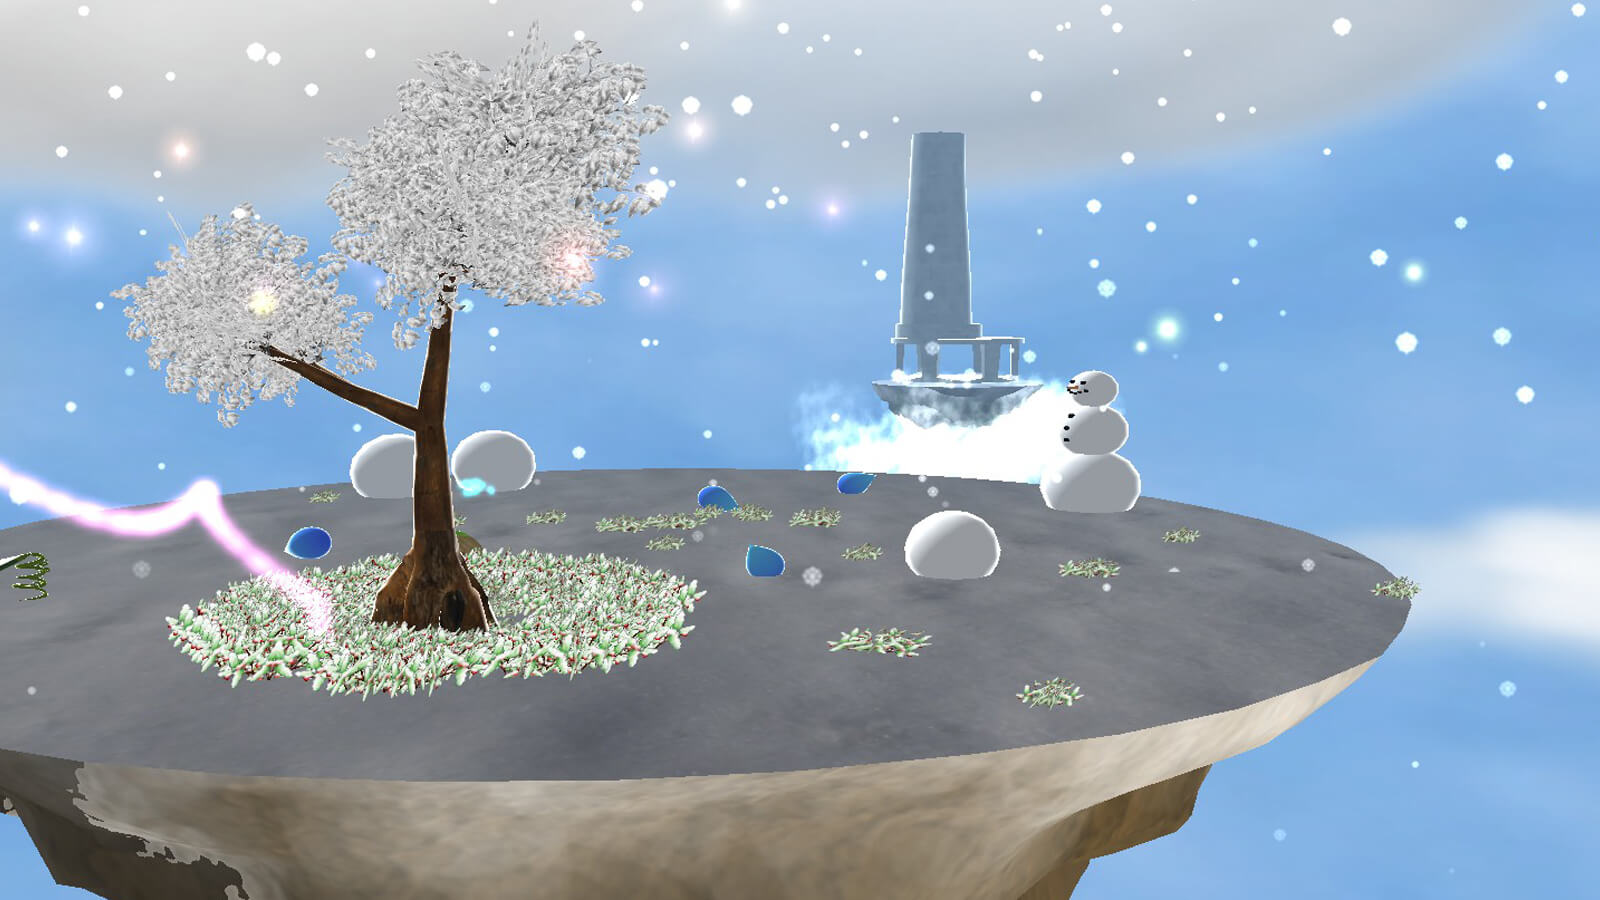 A floating island covered in snow, with a tree and a snowman.